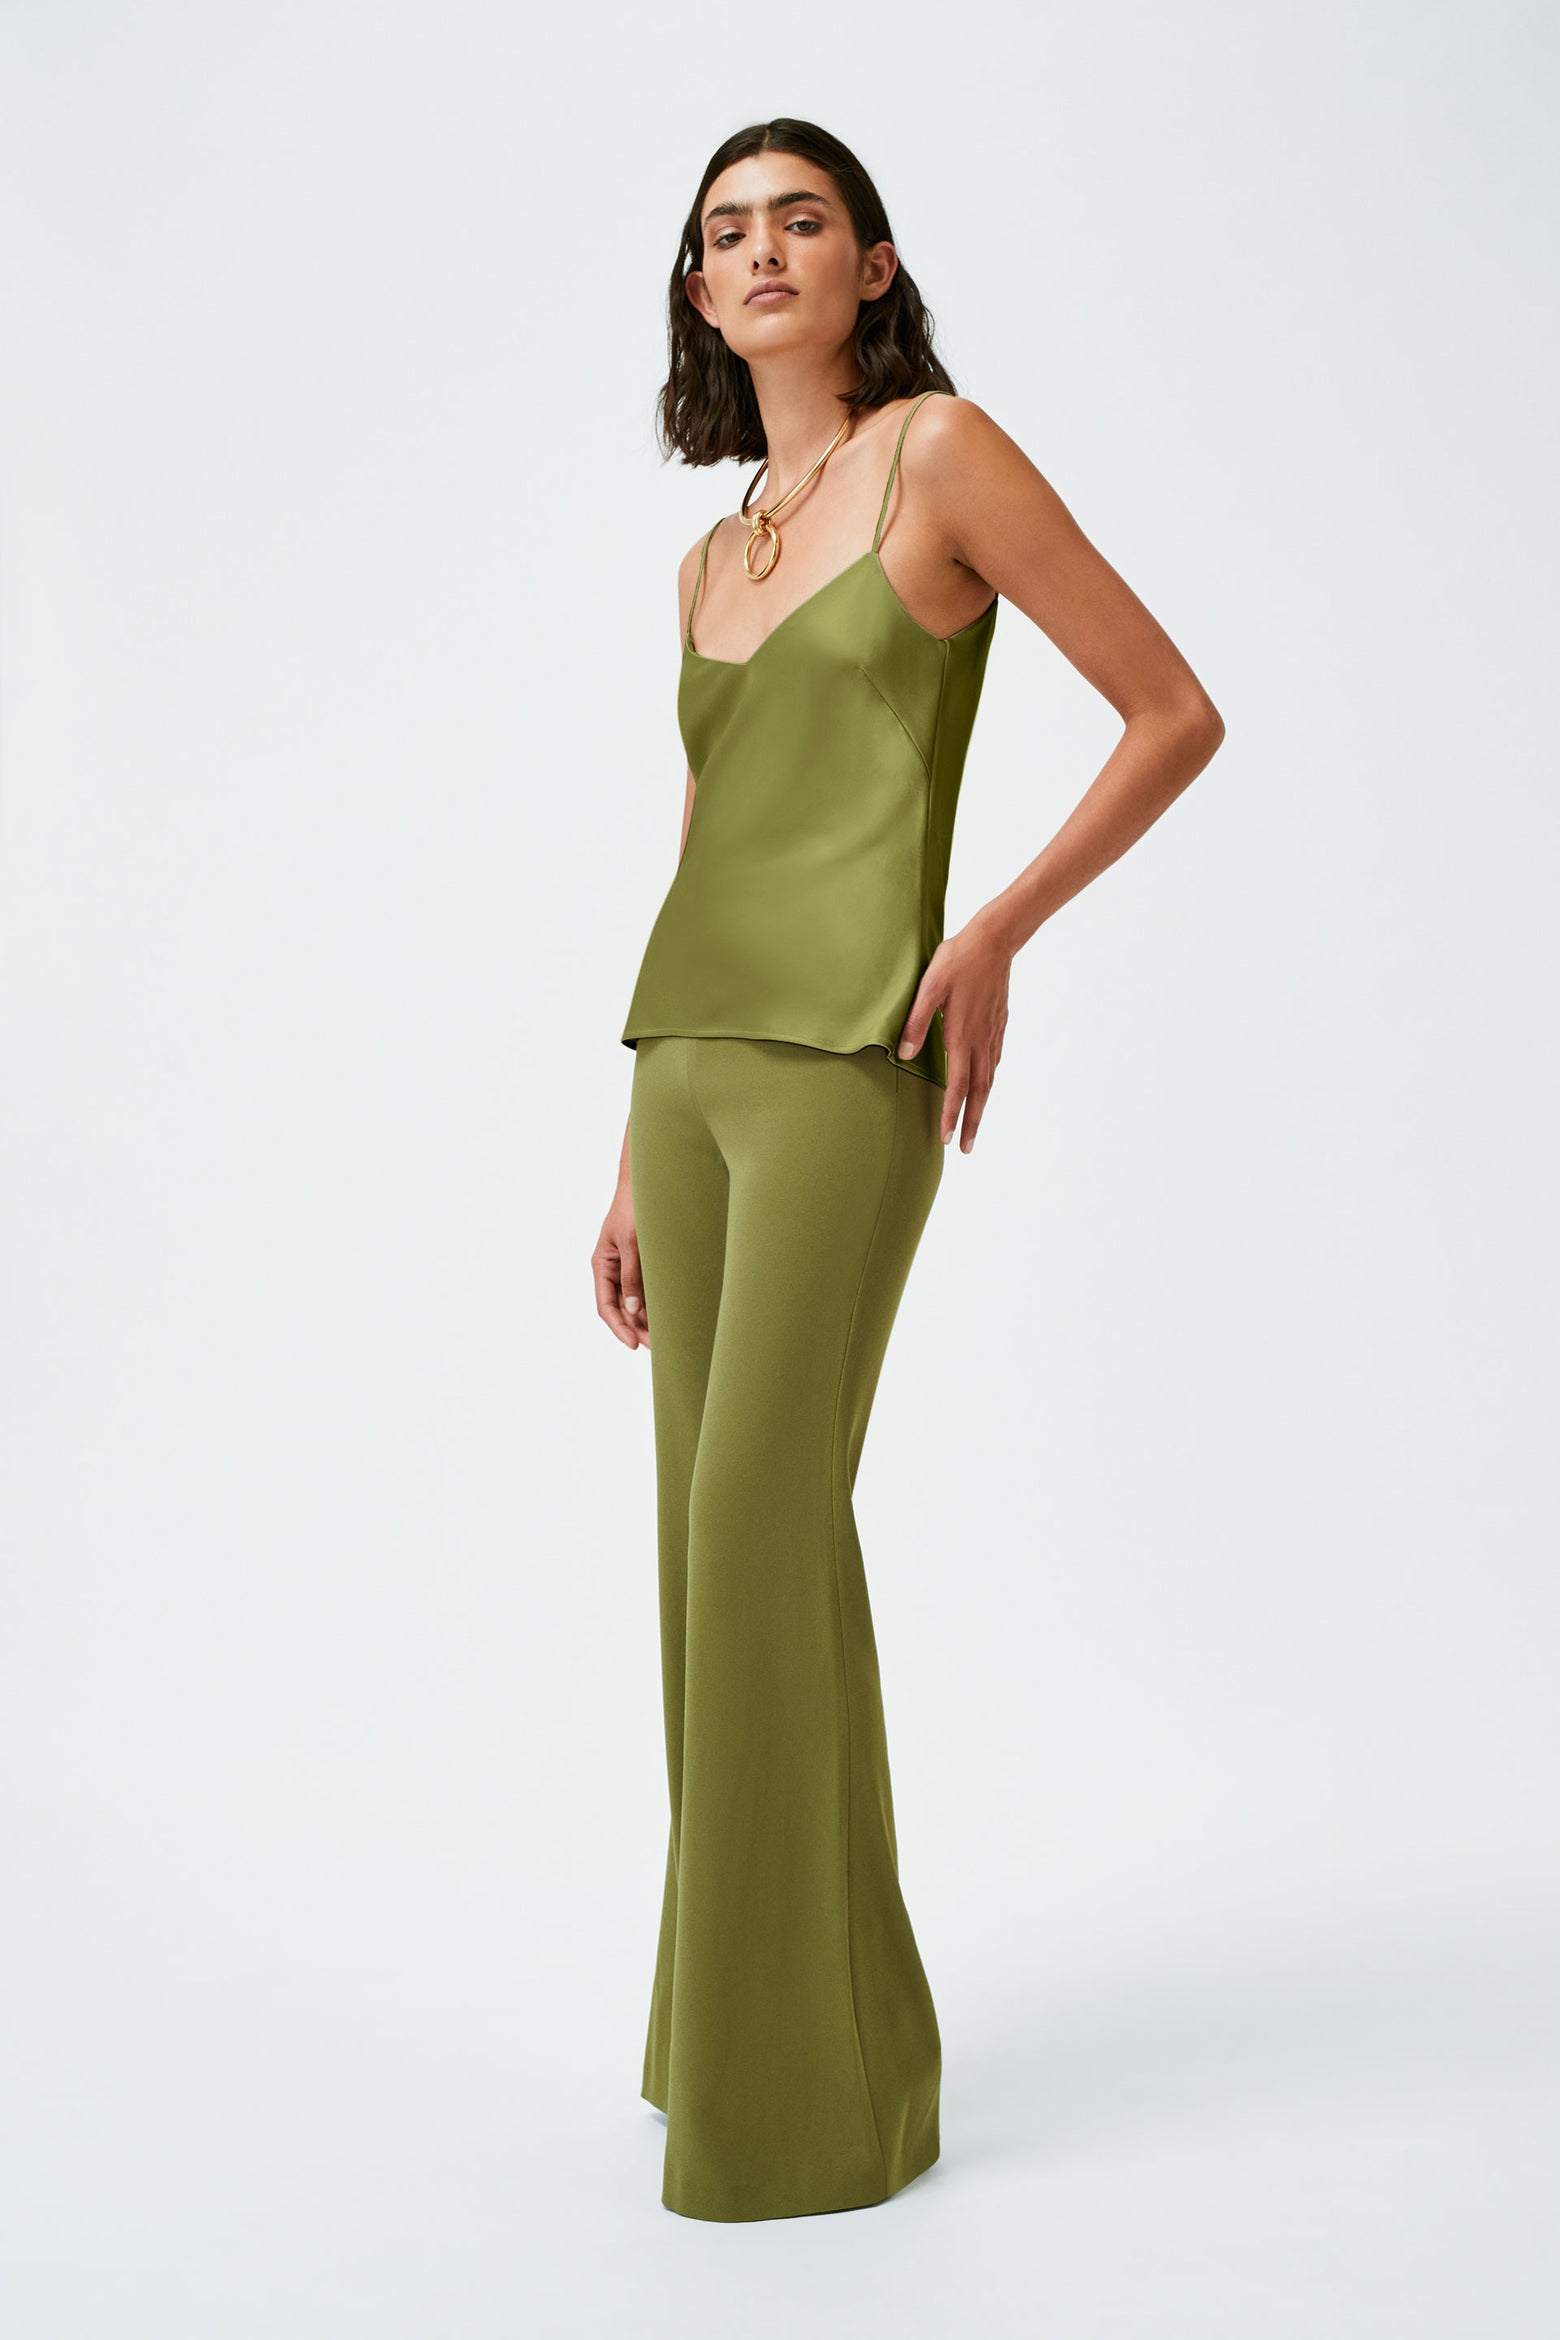 Satin V-Neck Camisole - Safari Green